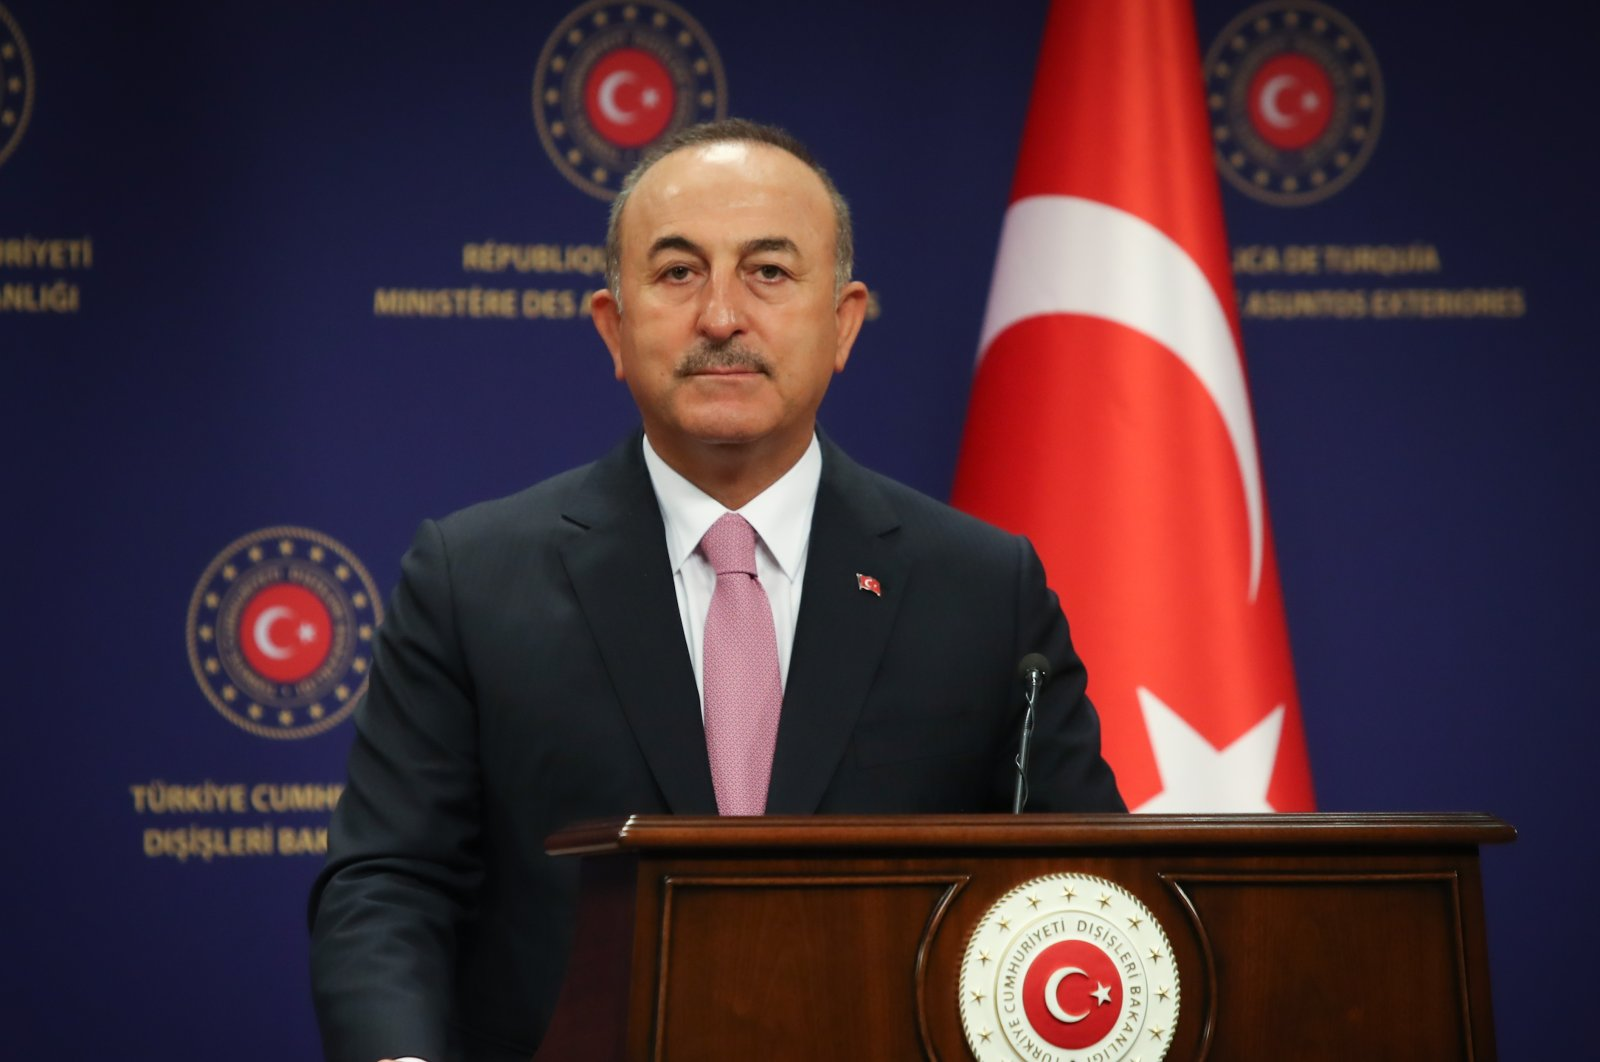 Foreign Minister Mevlüt Çavuşoğlu listens during a news conference in Ankara, Turkey, Sept. 1, 2020. (AA Photo)